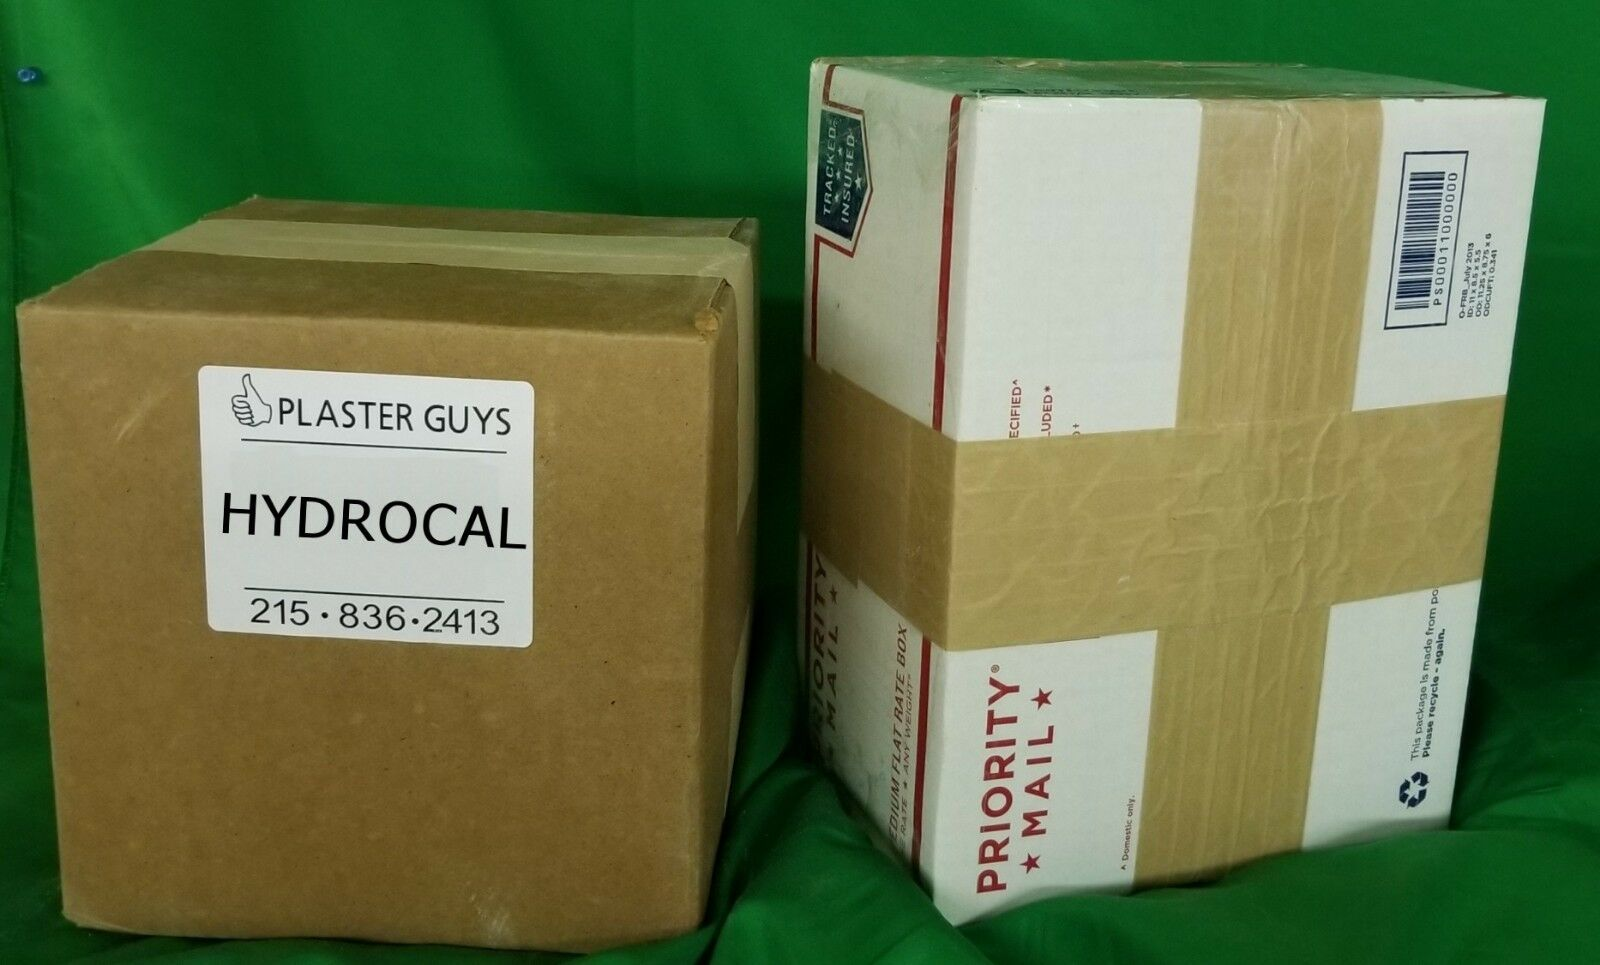 HYDROCAL - WHITE ART GYPSUM   -      25 Lbs  for         FREE  DELIVERY 8eef04